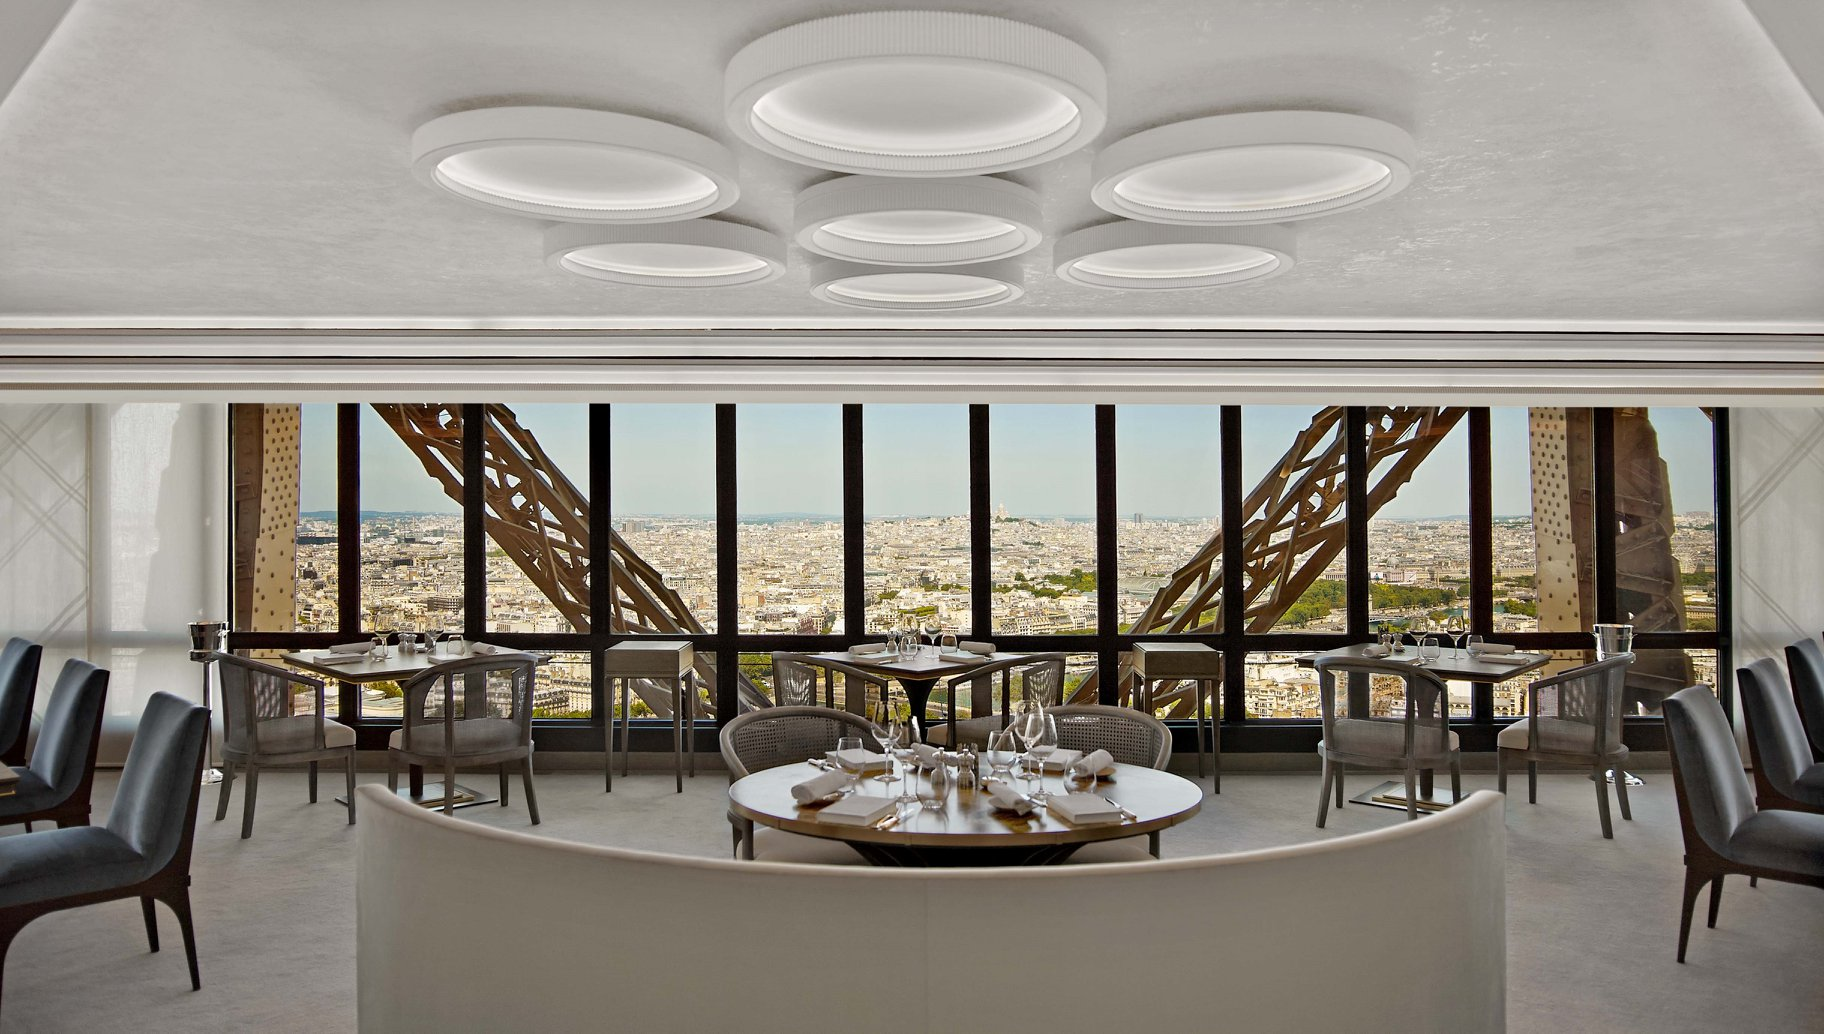 Eiffel Tower Restaurant The Jules Verne To Reopen After